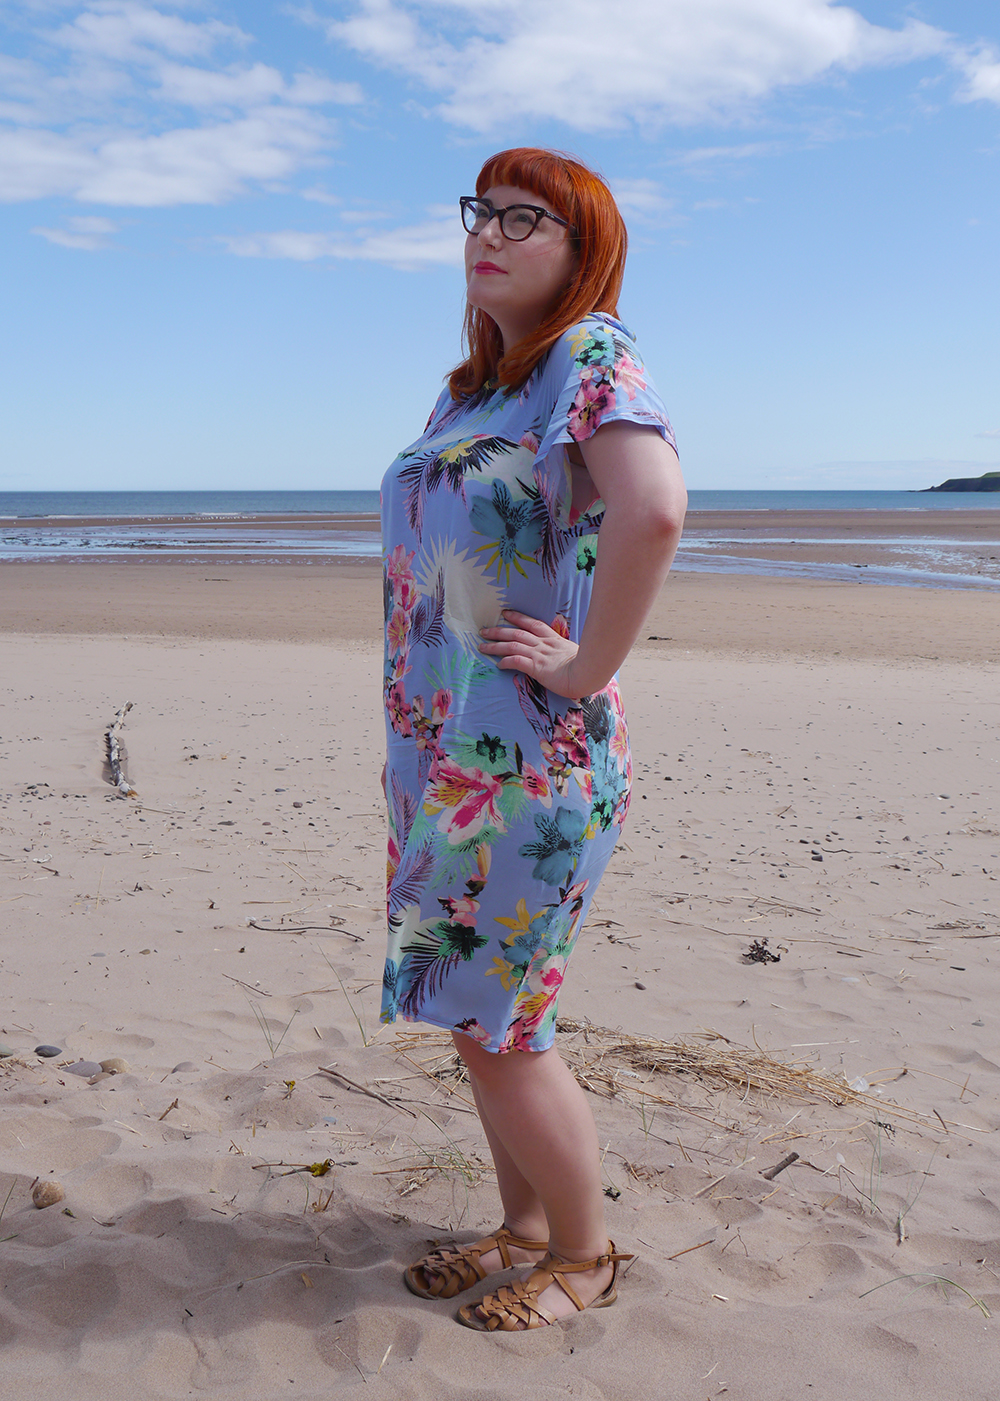 summer style, tropical style, beach style, DIY dress, dressmaking, Styled by Helen: Tropical, red head, ginger, Topshop sandals, pink blazer, Tom Pigeon earrings